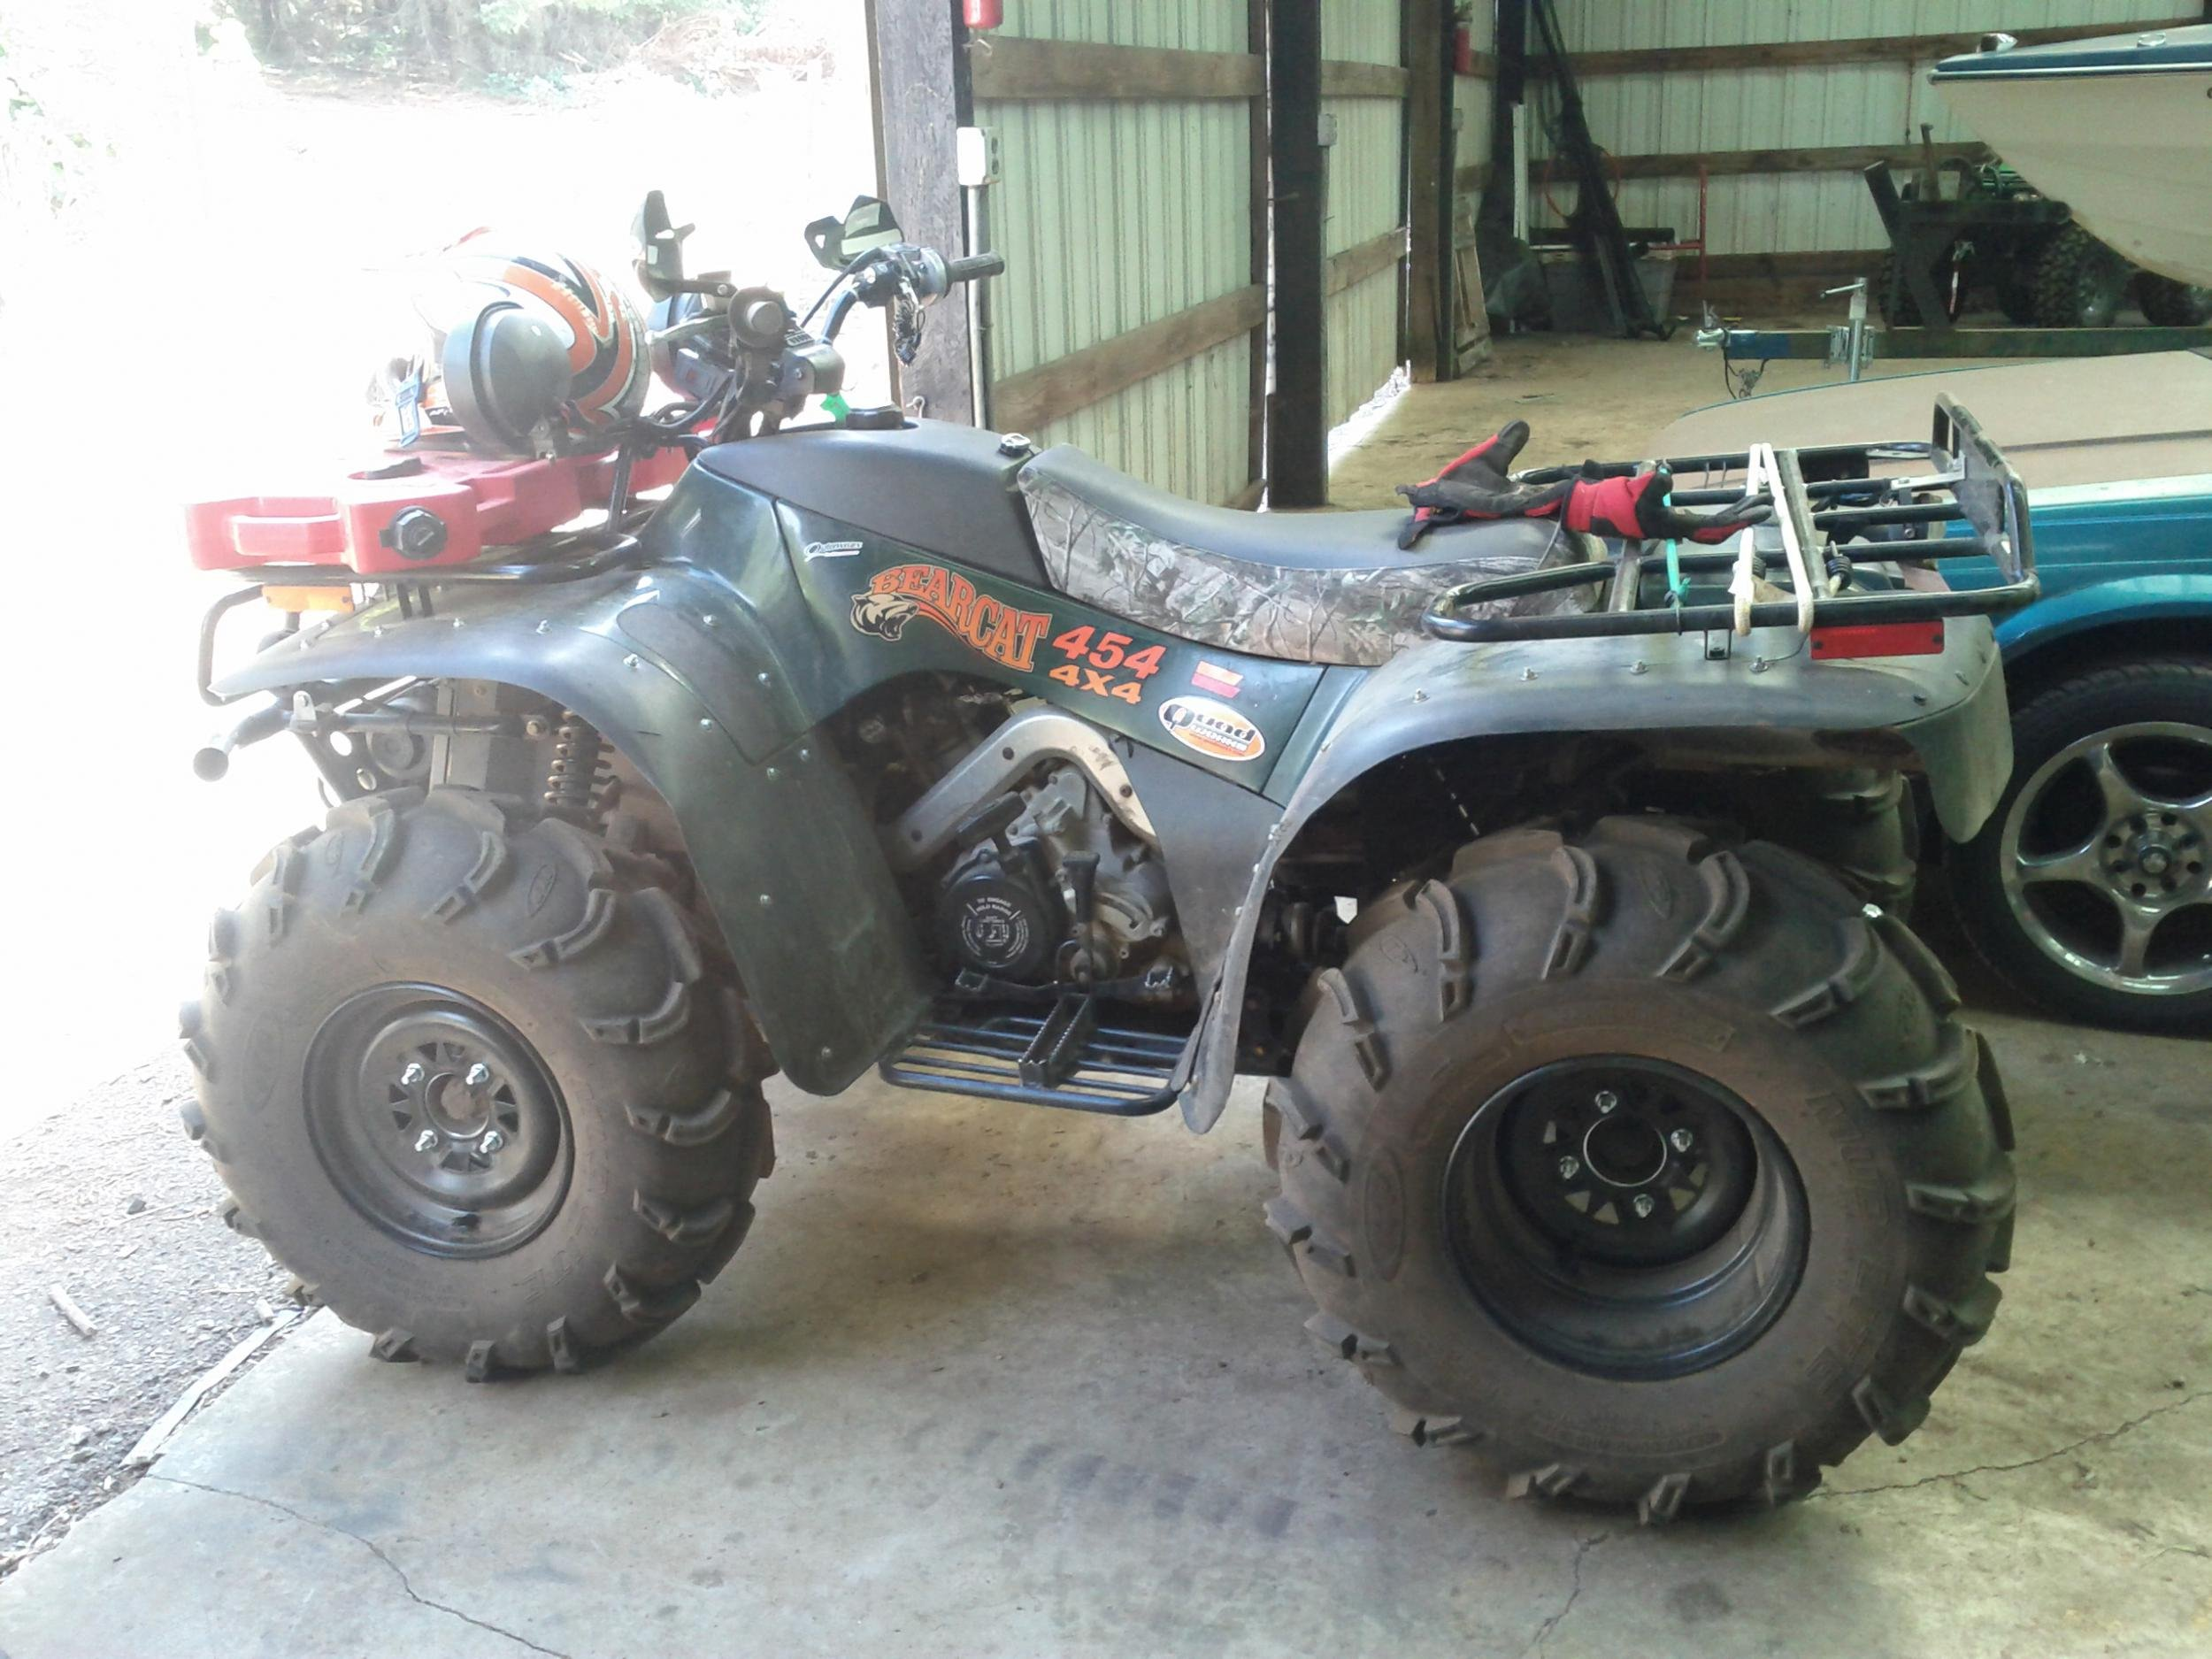 1997 Bearcat 454 - upgrades-img_20120826_153325.jpg